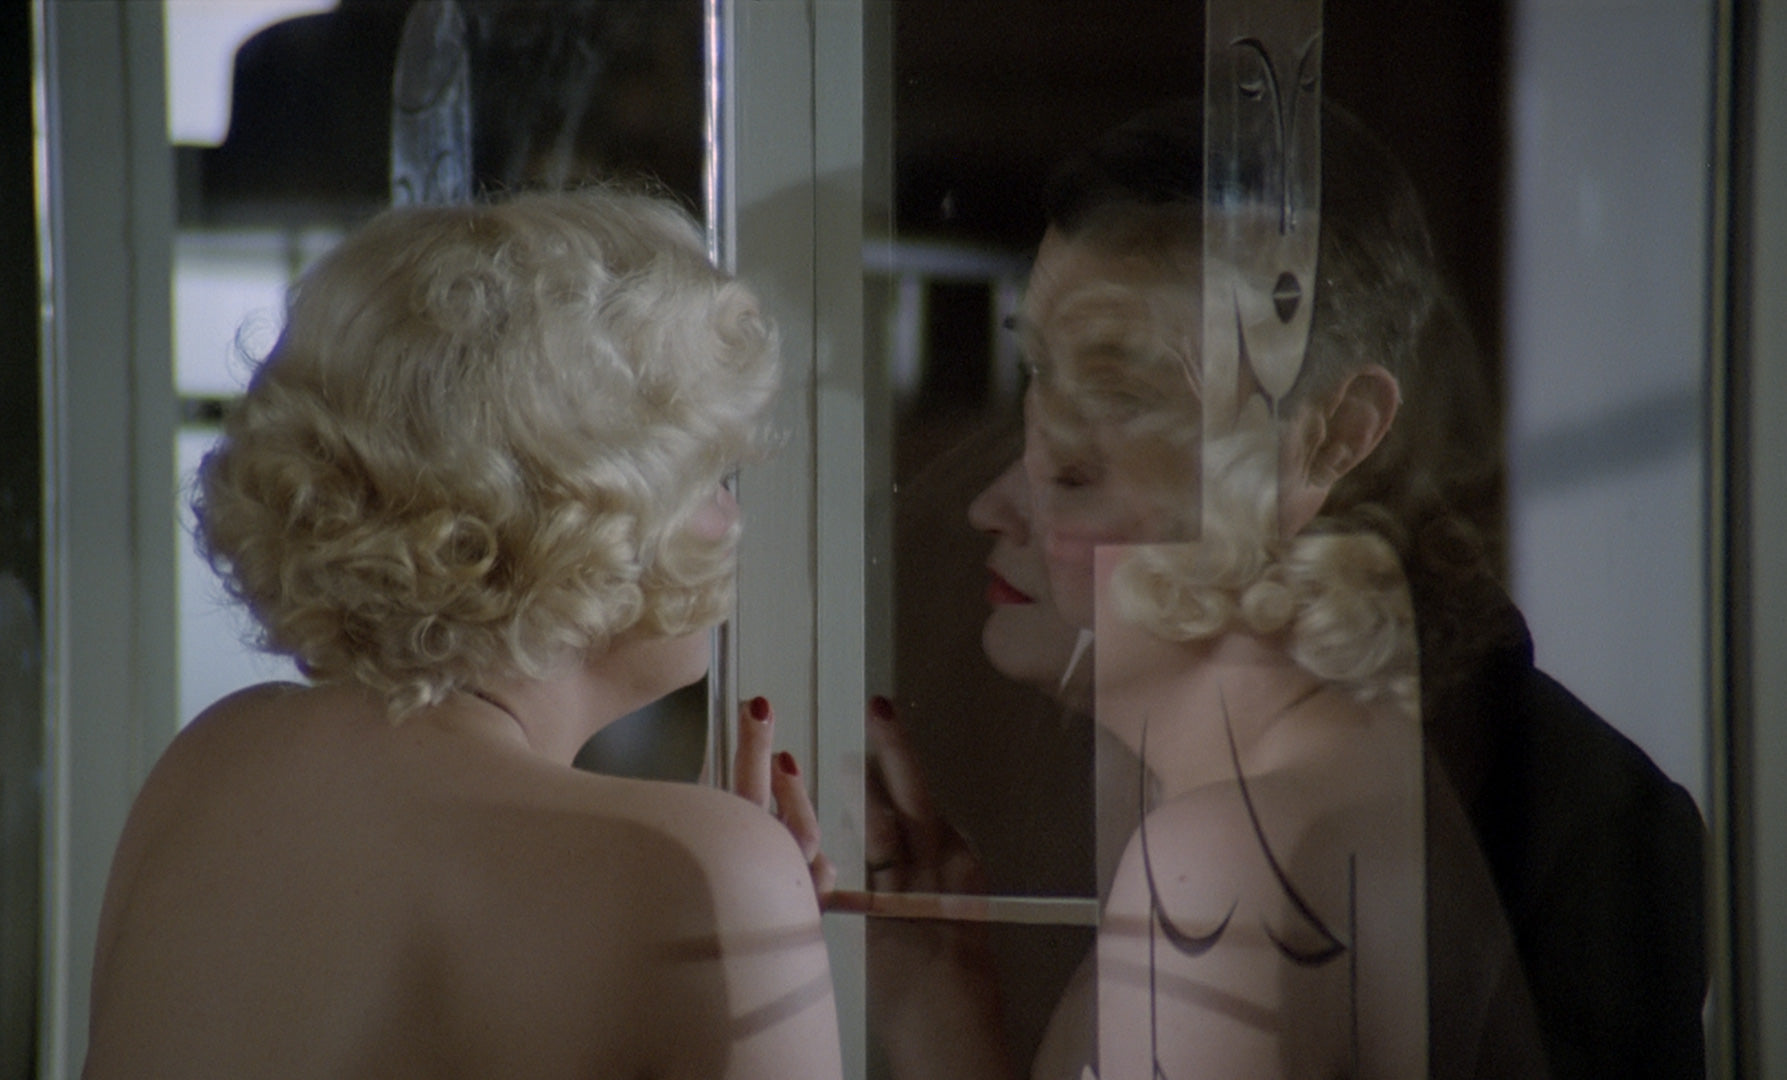 Despair de Rainer Werner Fassbinder - CARLOTTA FILMS - La Boutique